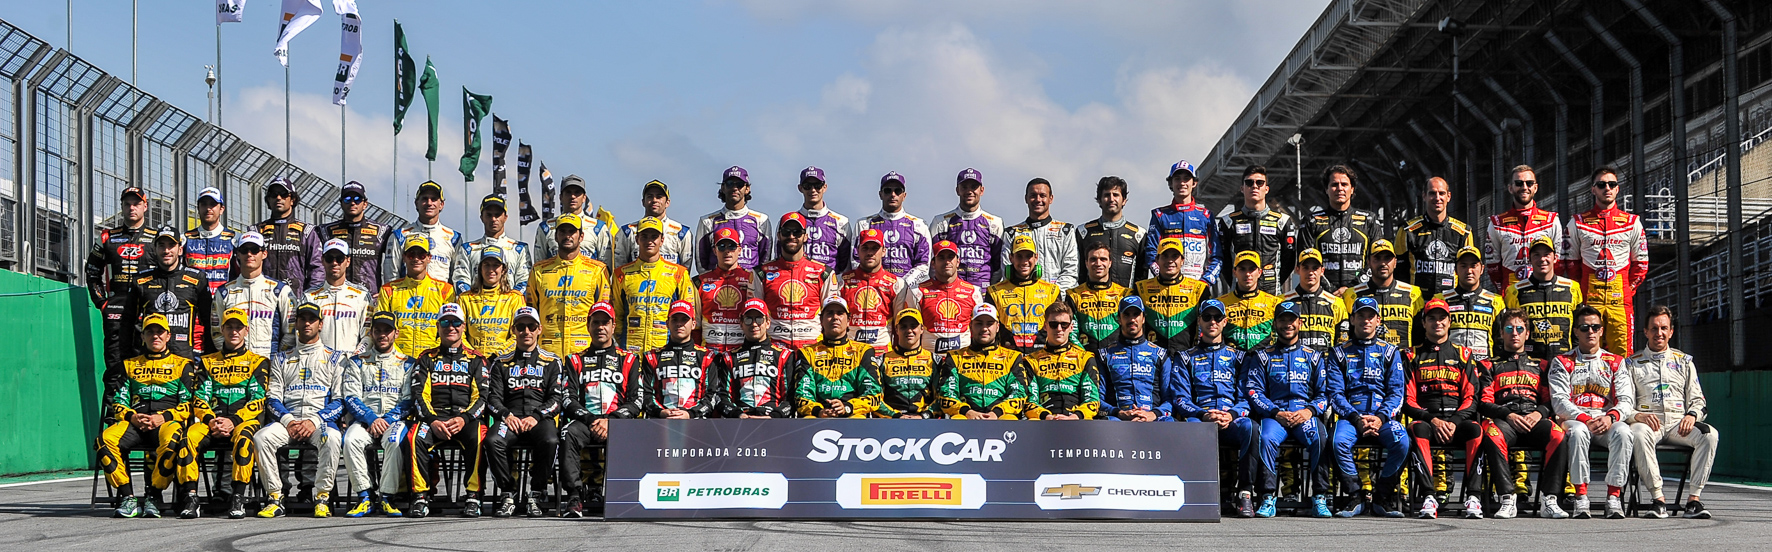 StockCar2018_dudabairros_Interlagos-42808